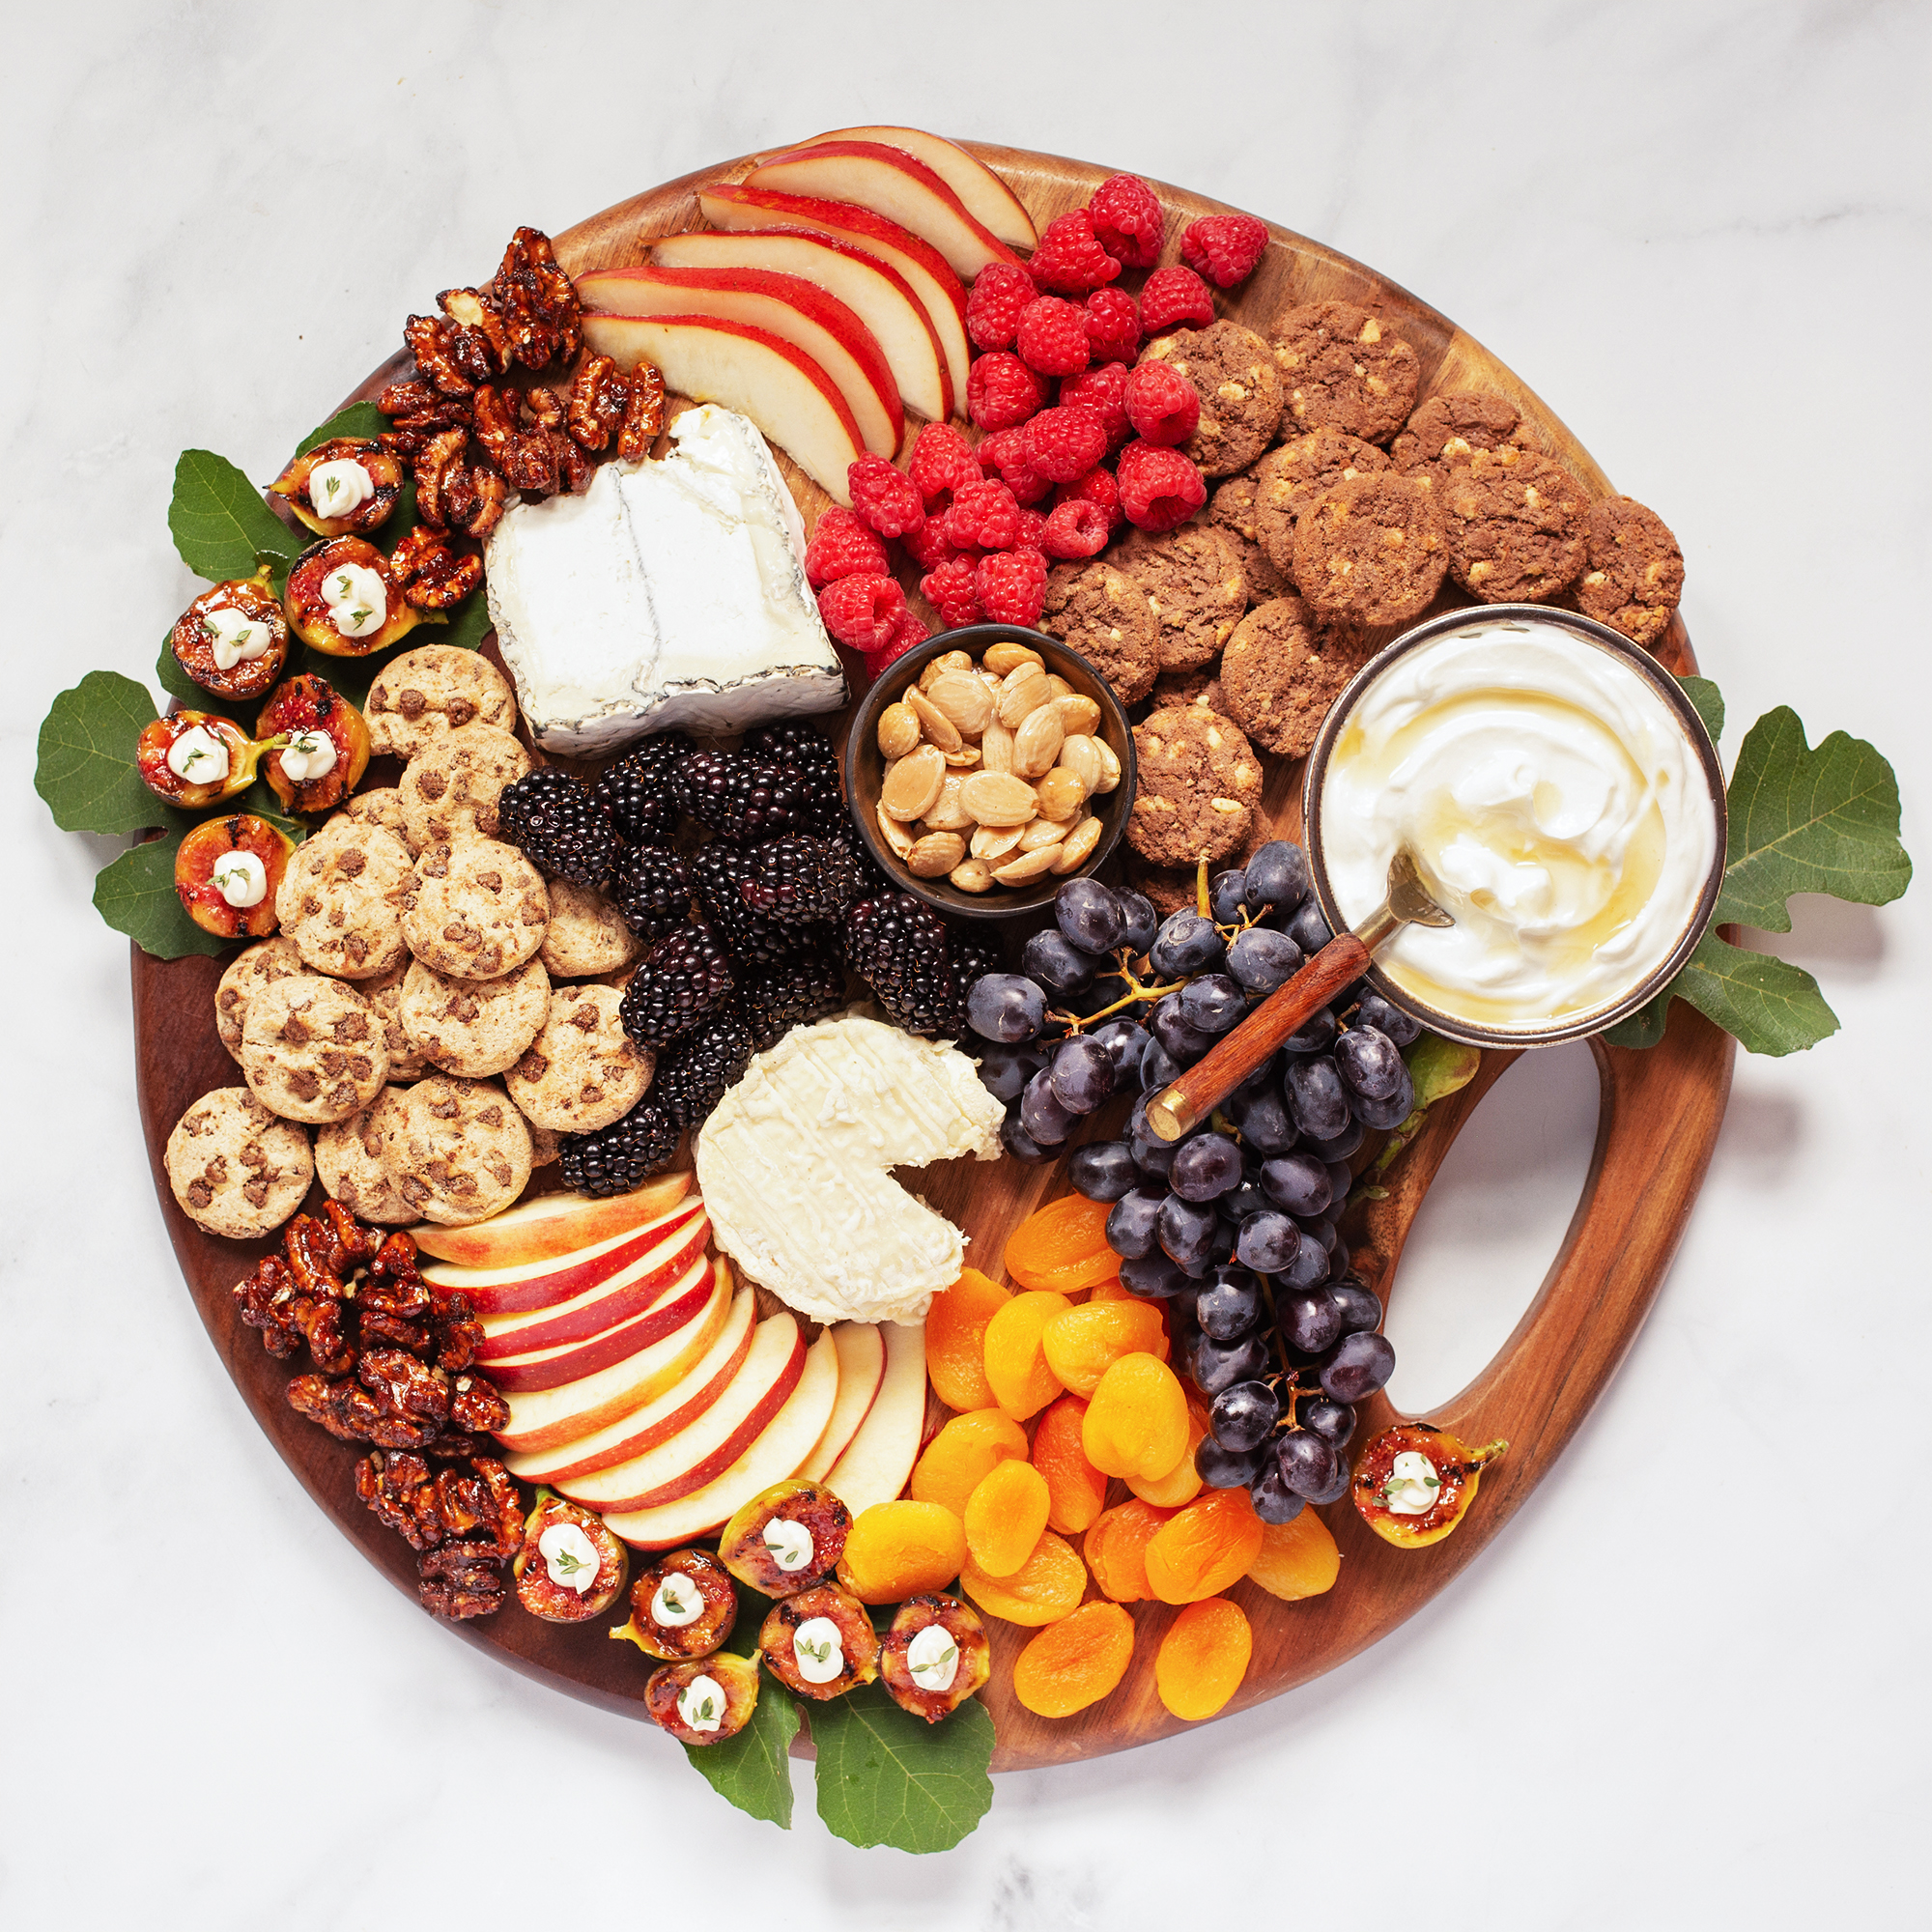 A charcuterie board with fruits, cheeses, and Famous Amos Cookies.